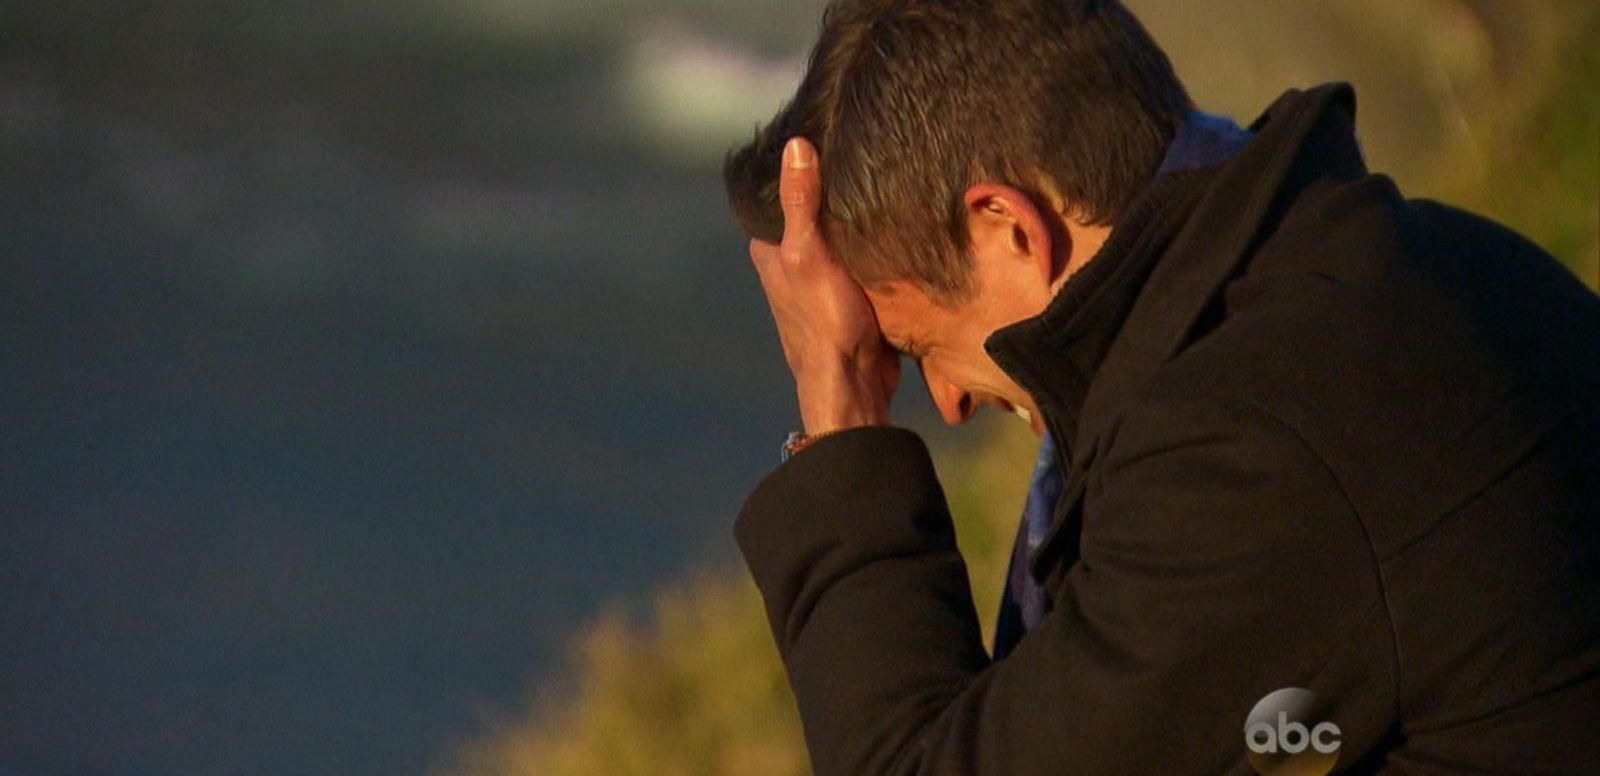 VIDEO: 'Bachelorette' Gives Emotional Goodbye to Chris 'Cupcake' at the Edge of a Cliff